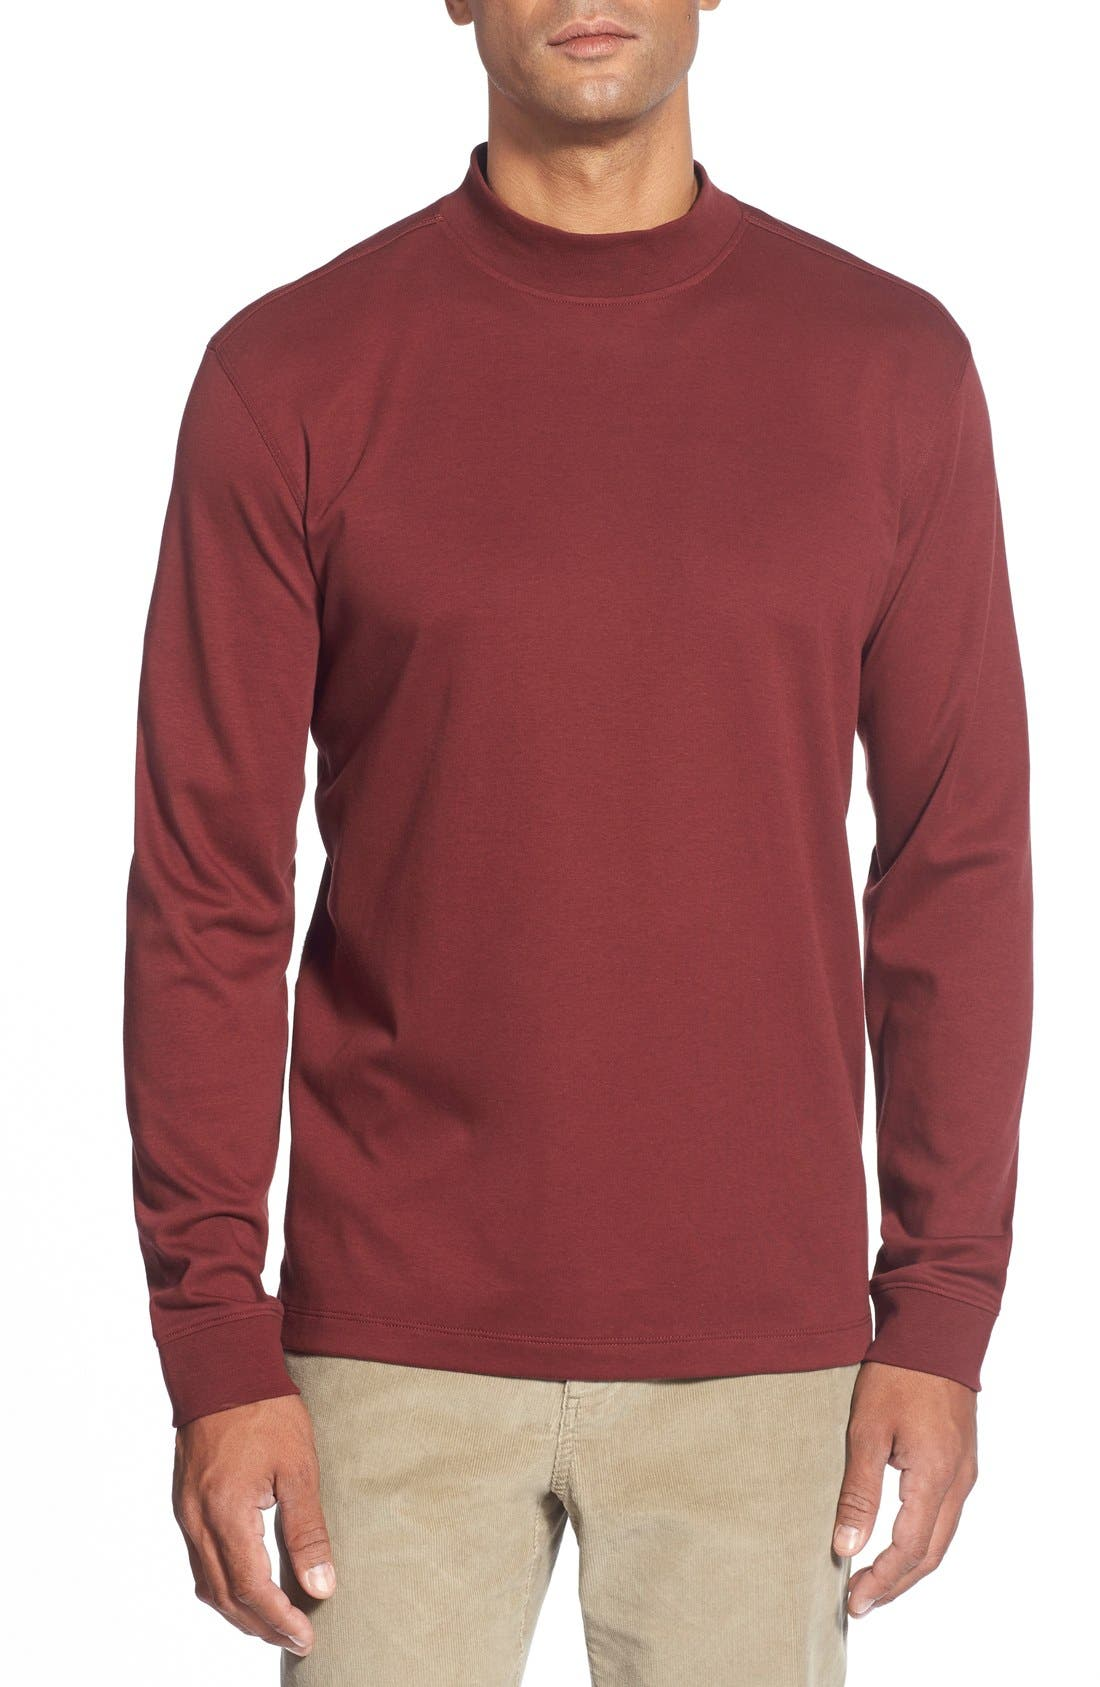 Main Image - Cutter & Buck 'Belfair' Long Sleeve Mock Neck Pima Cotton T-Shirt